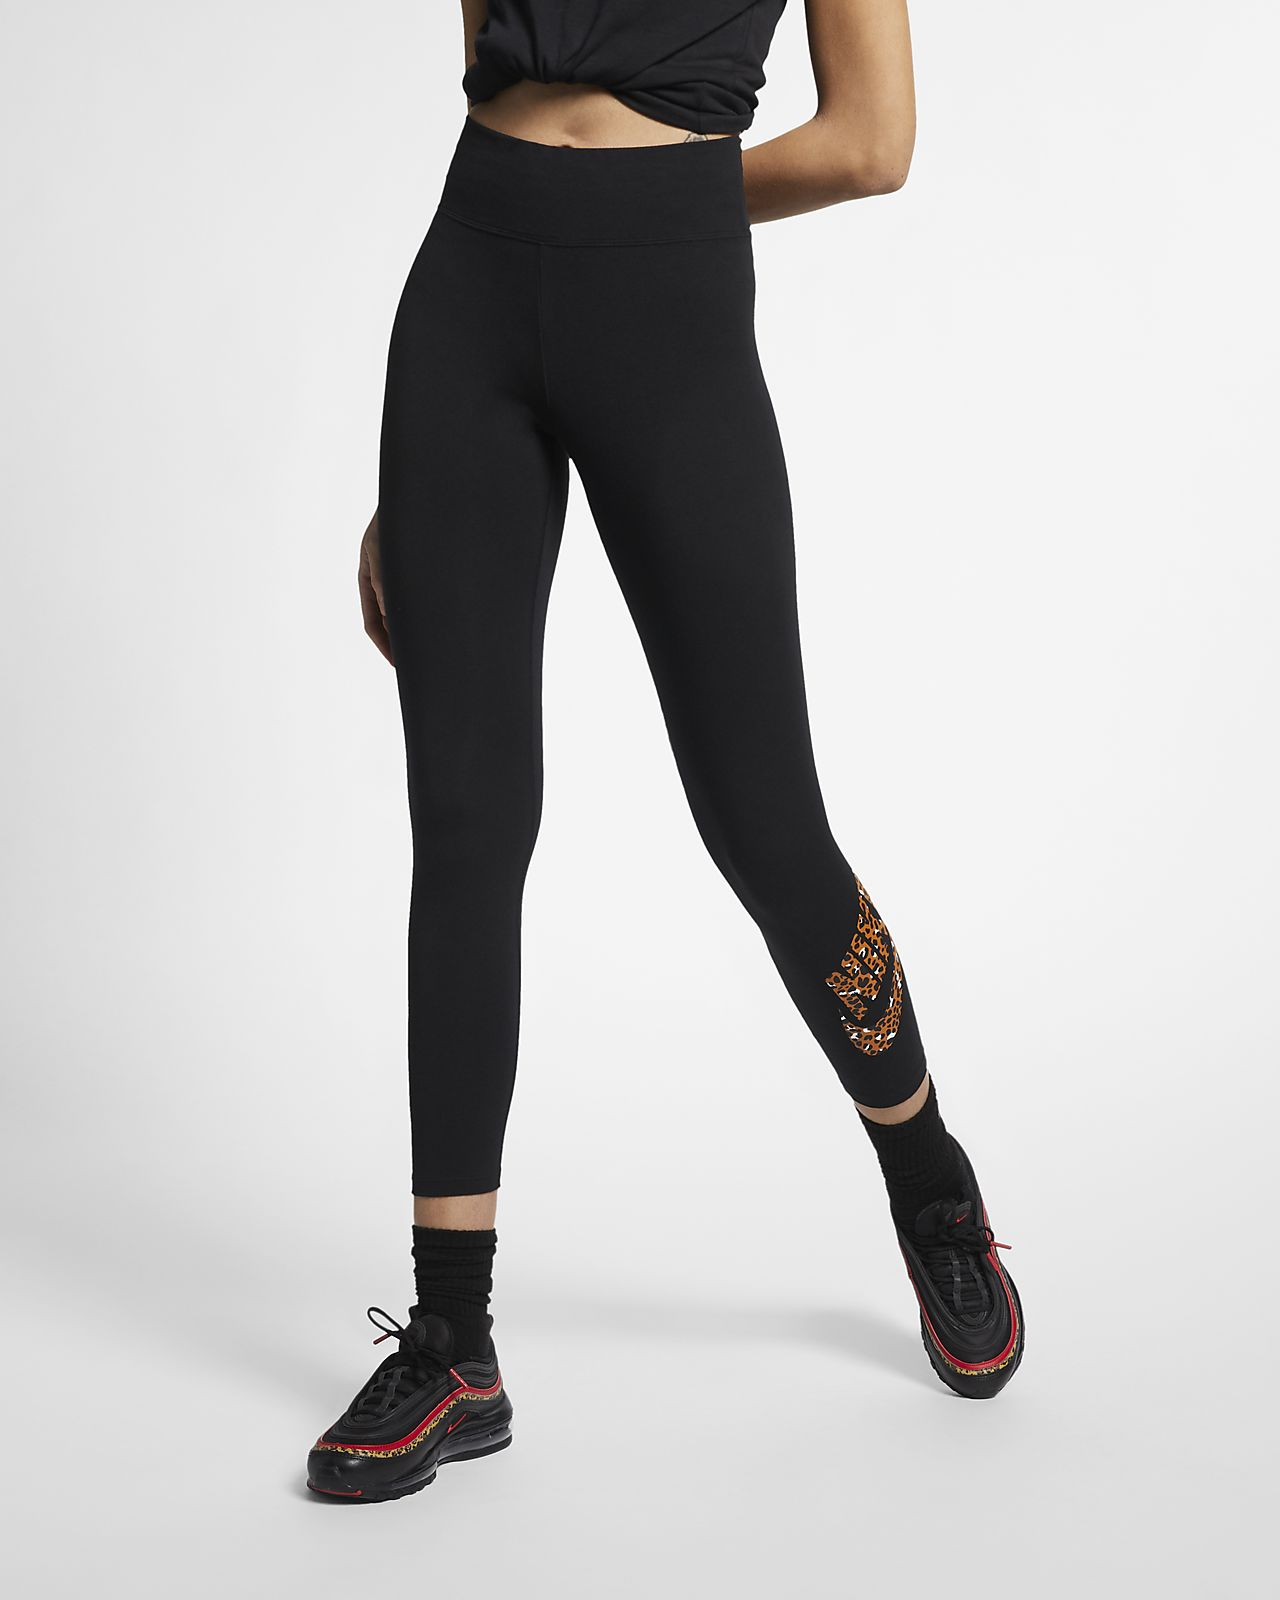 Nike Sportswear Animal Print Women's Leggings